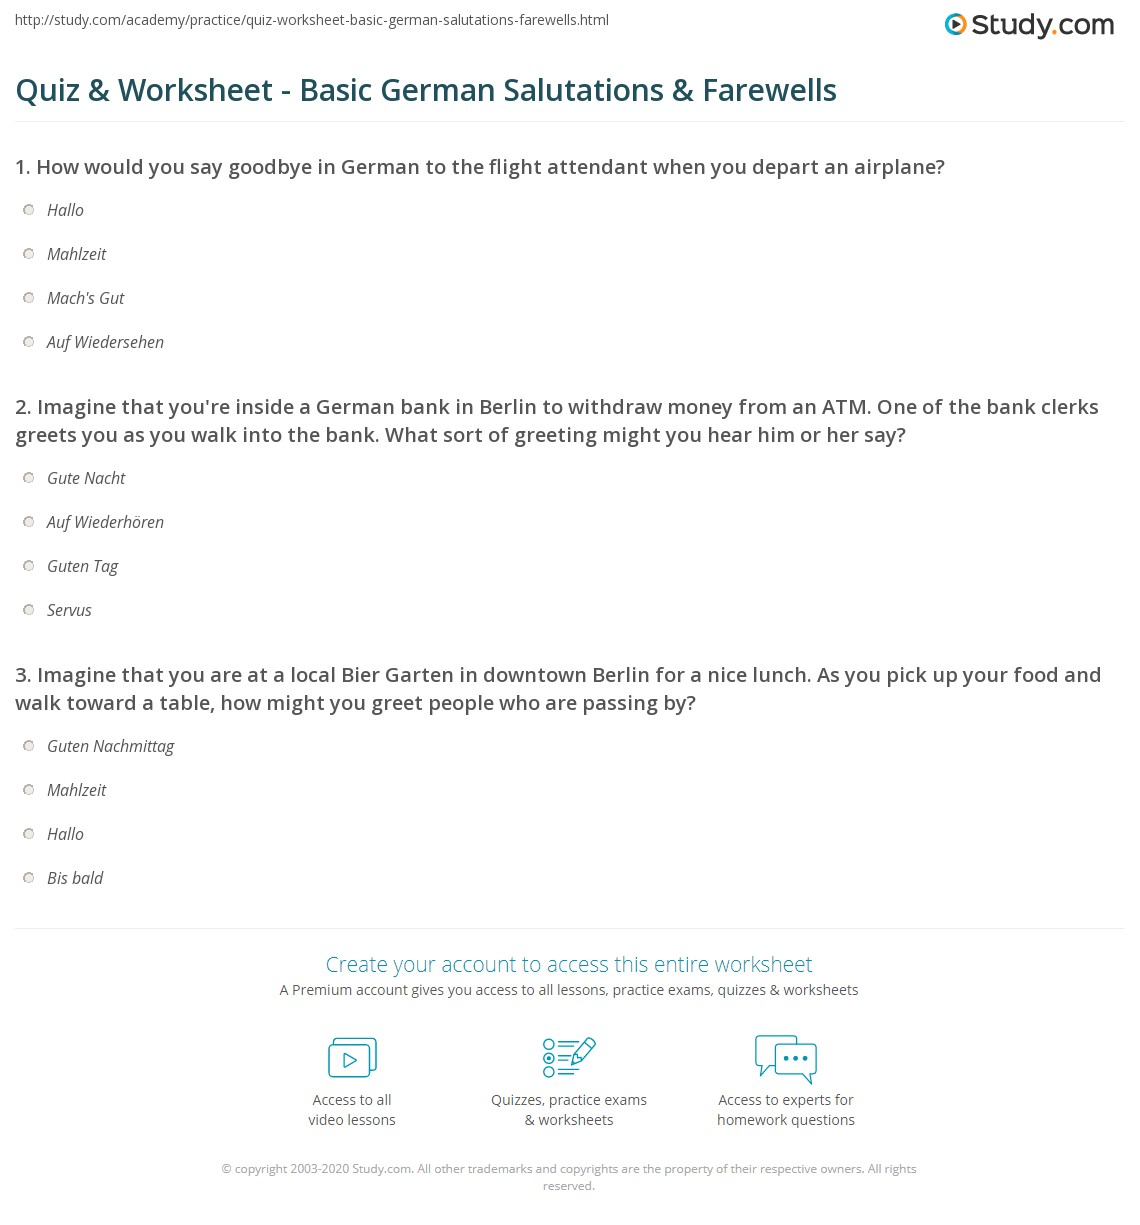 Quiz Worksheet Basic German Salutations Farewells Study